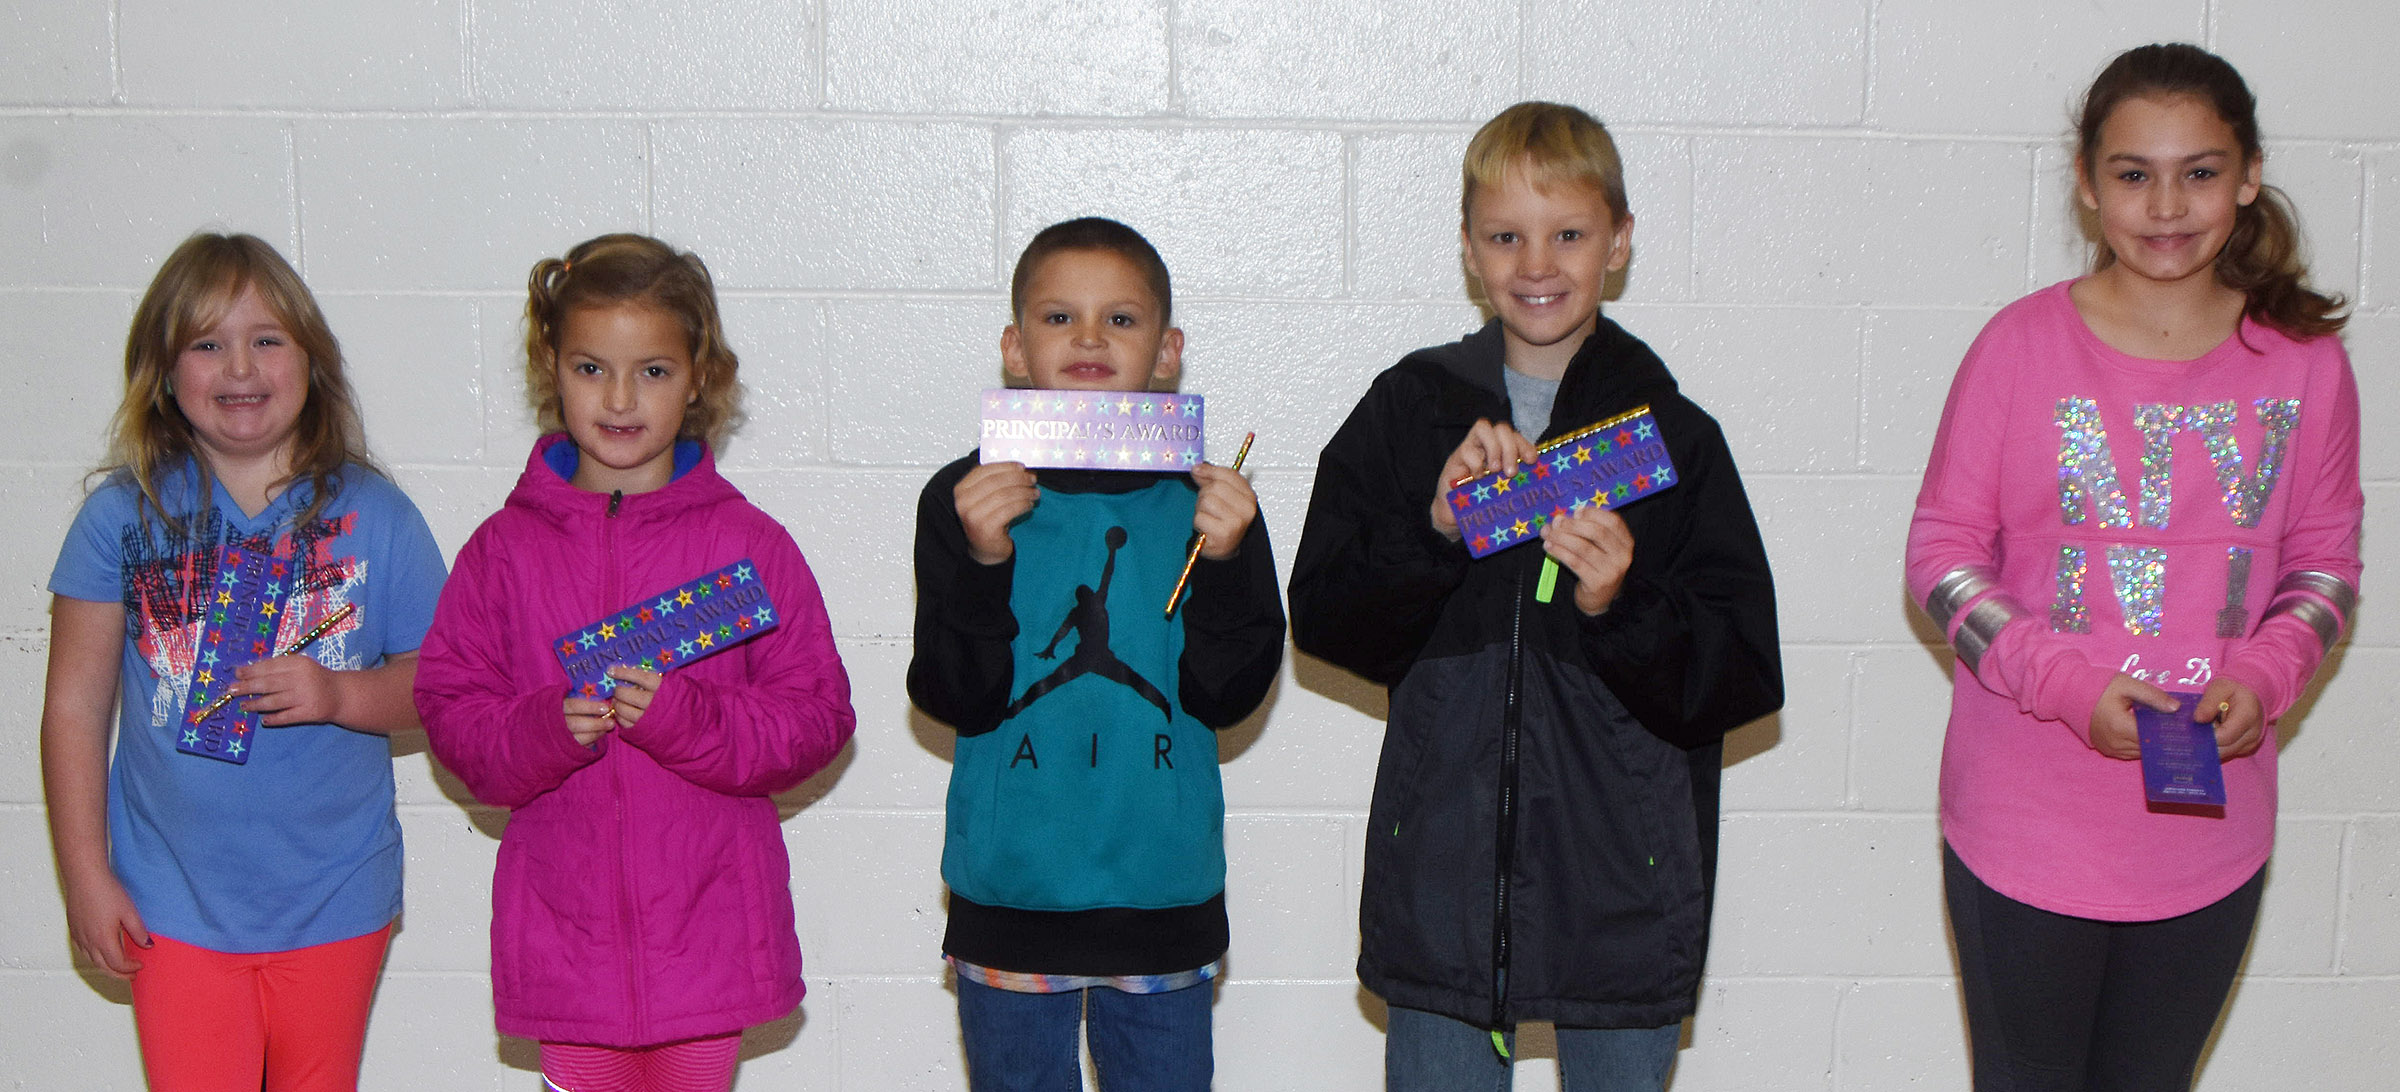 From left are second-grader Briley Sapp, first-grader Mae Miller, third-grader Seeley Whitaker, fourth-grader Braxton Agee and fifth-grader Kealey Mann.